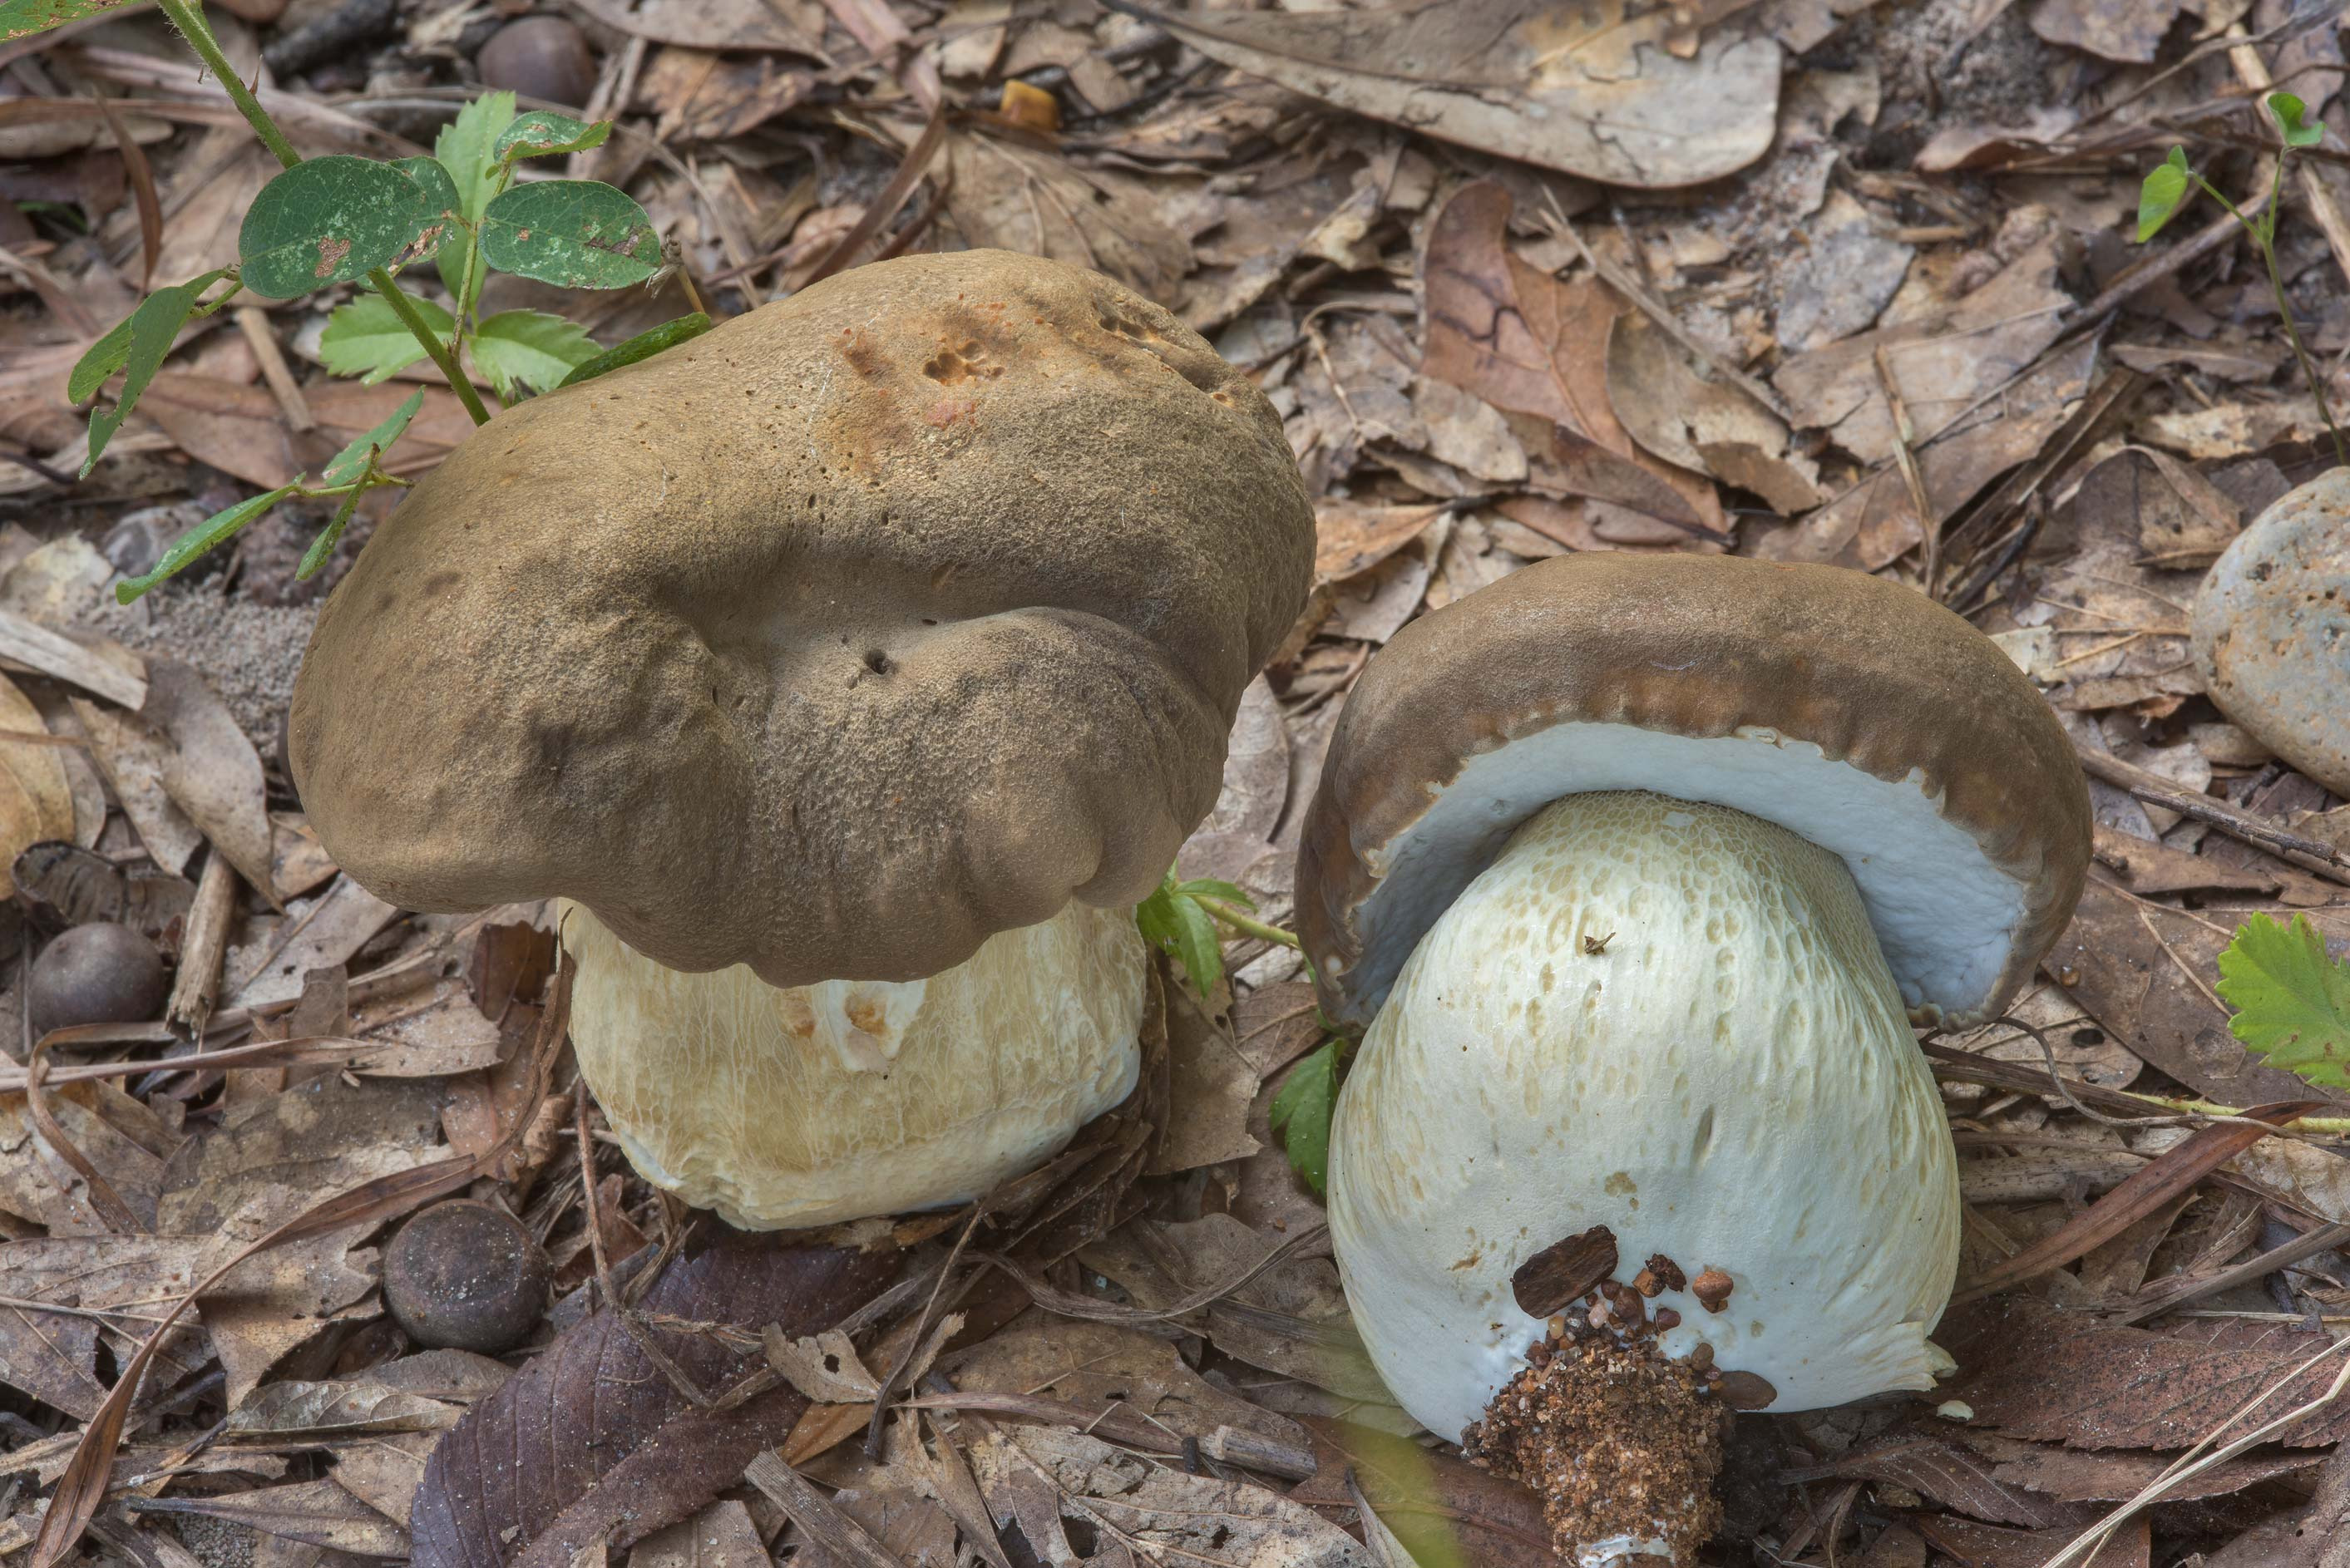 Pair of young porcini mushrooms (Boletus edulis...Creek Park. College Station, Texas